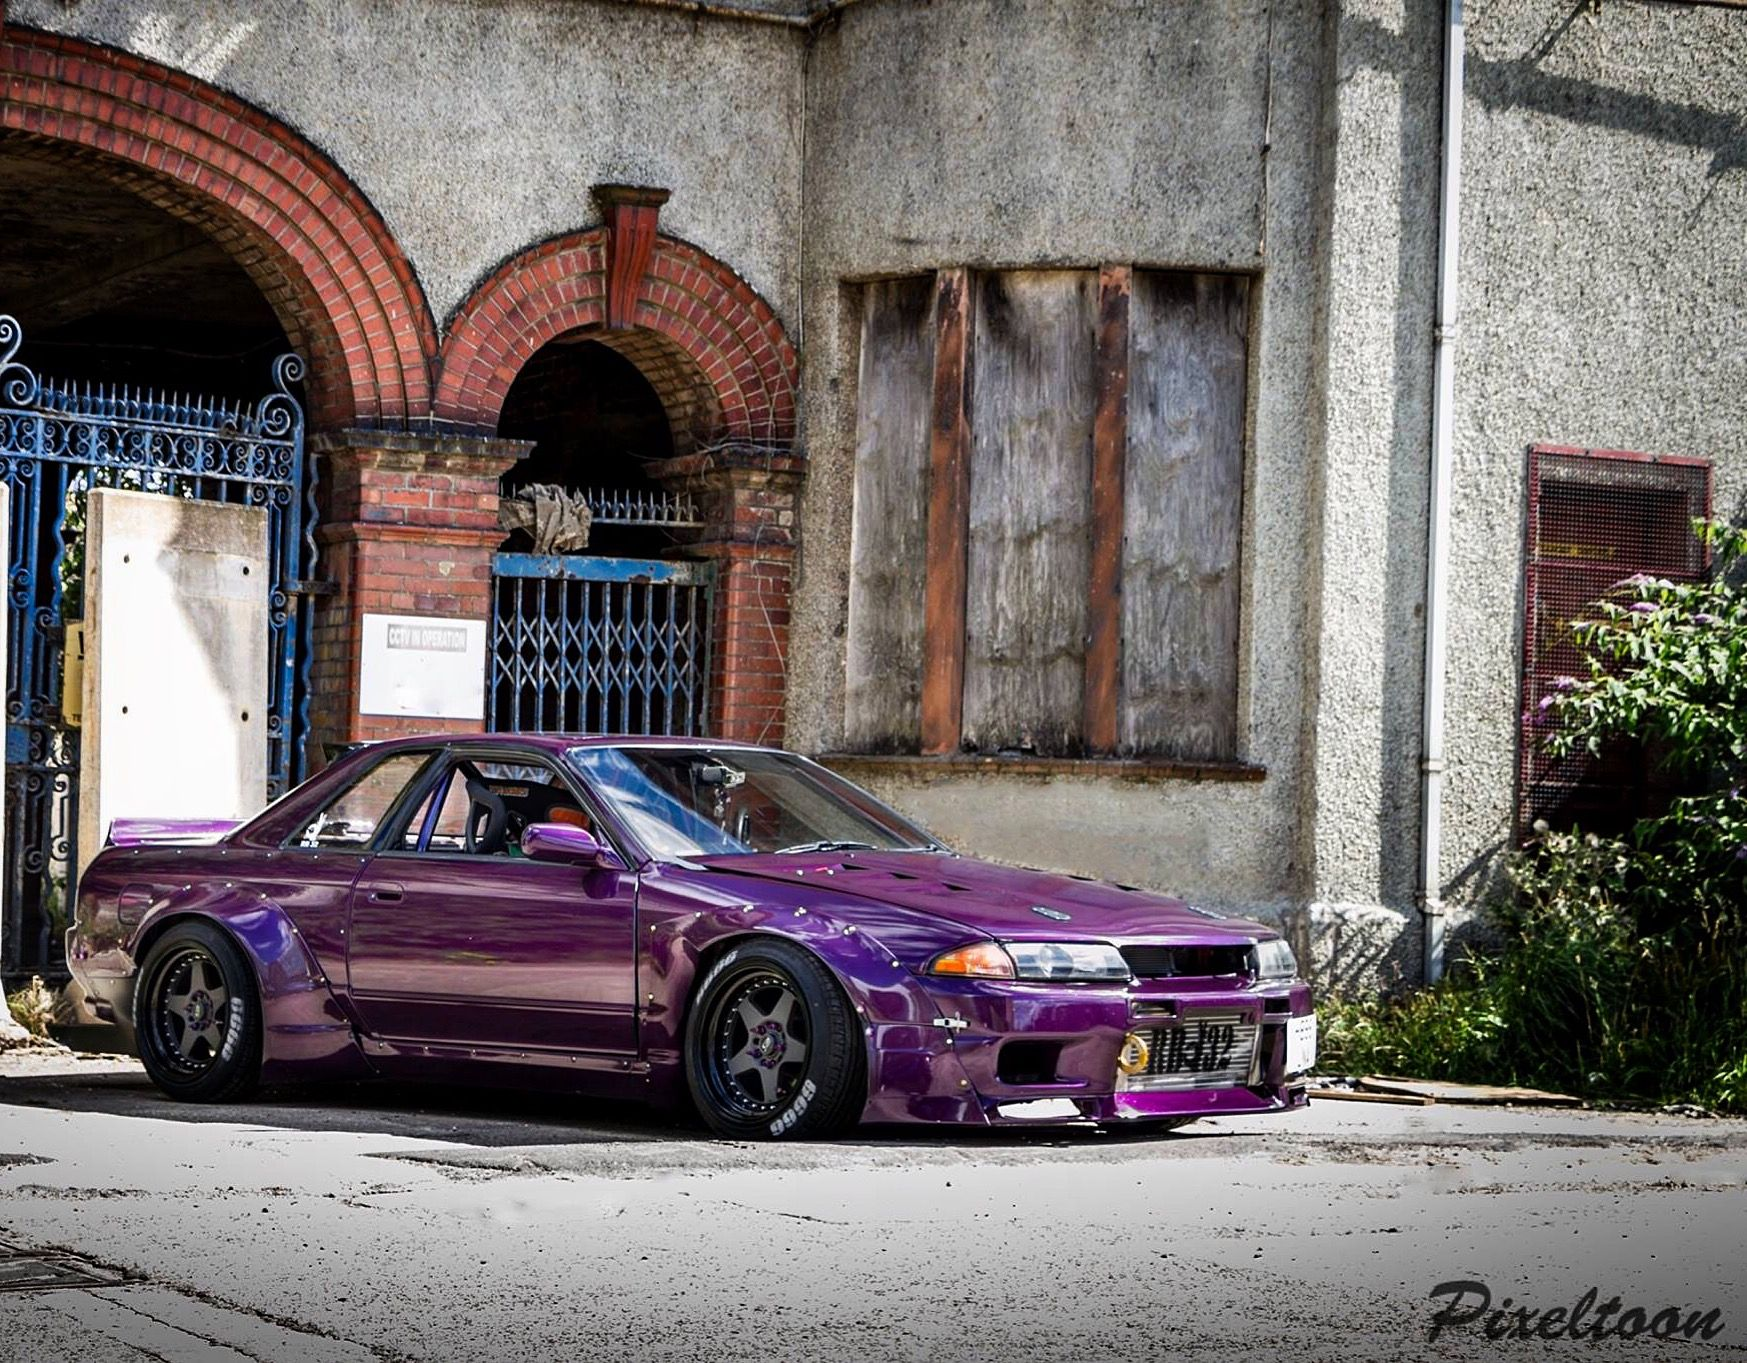 Smoodys Rocket Bunny R32 Skyline Rb32 Https Www Instagram Com Smoody San Nissan Skyline Weird Cars R32 Skyline